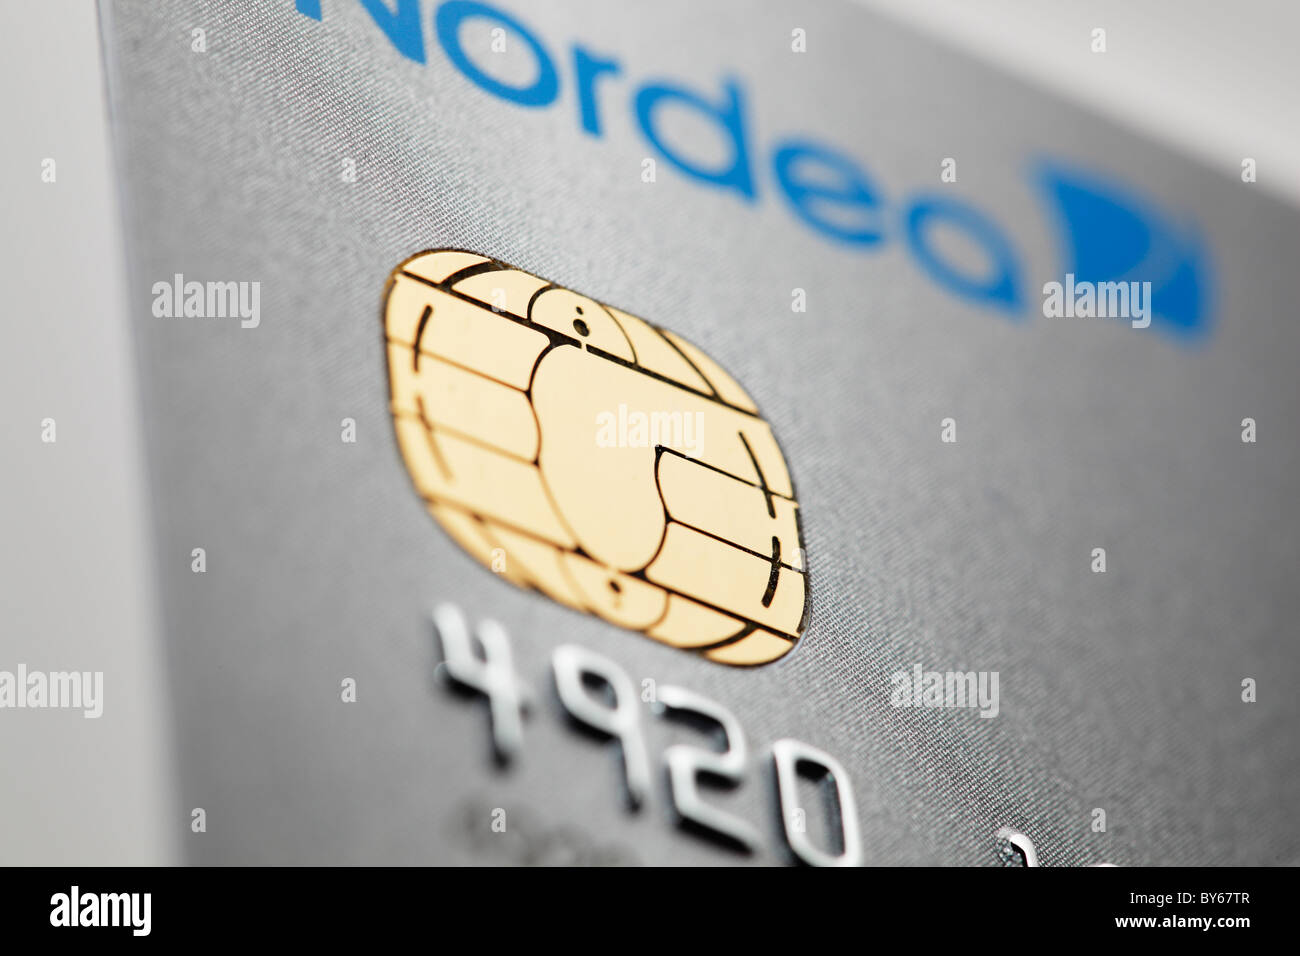 Detail of a icc chip card credit card issued by Nordea bank. - Stock Image